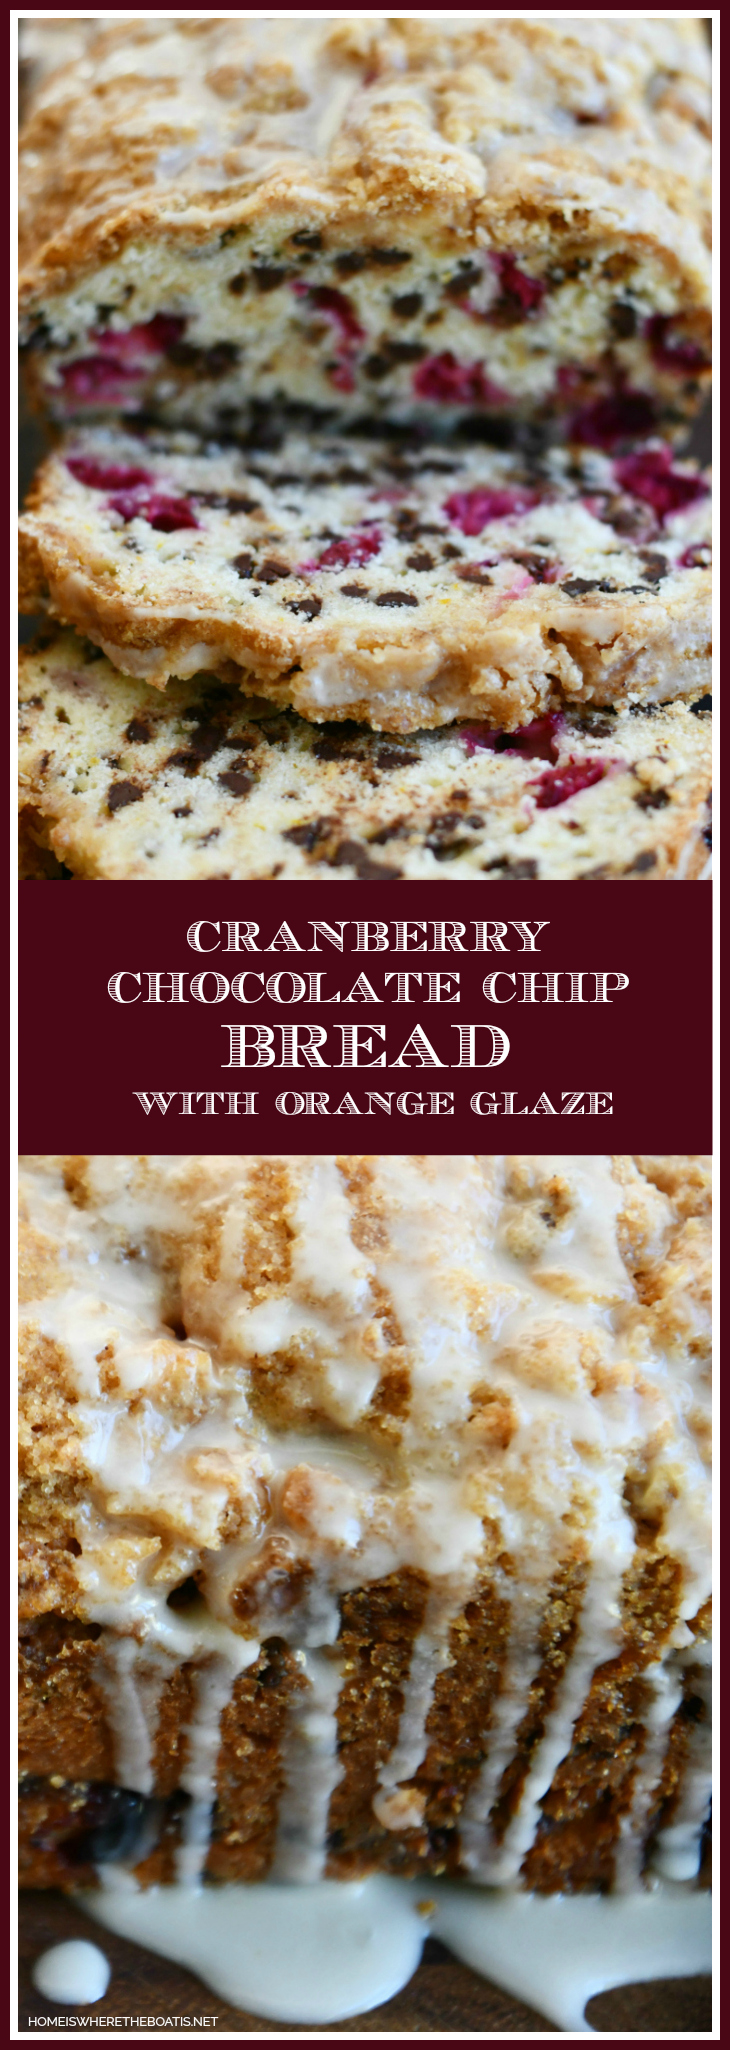 Cranberry-Chocolate Chip Bread with Orange Glaze | ©homeiswheretheboatis.net #recipes #foodgift #christmas #baking